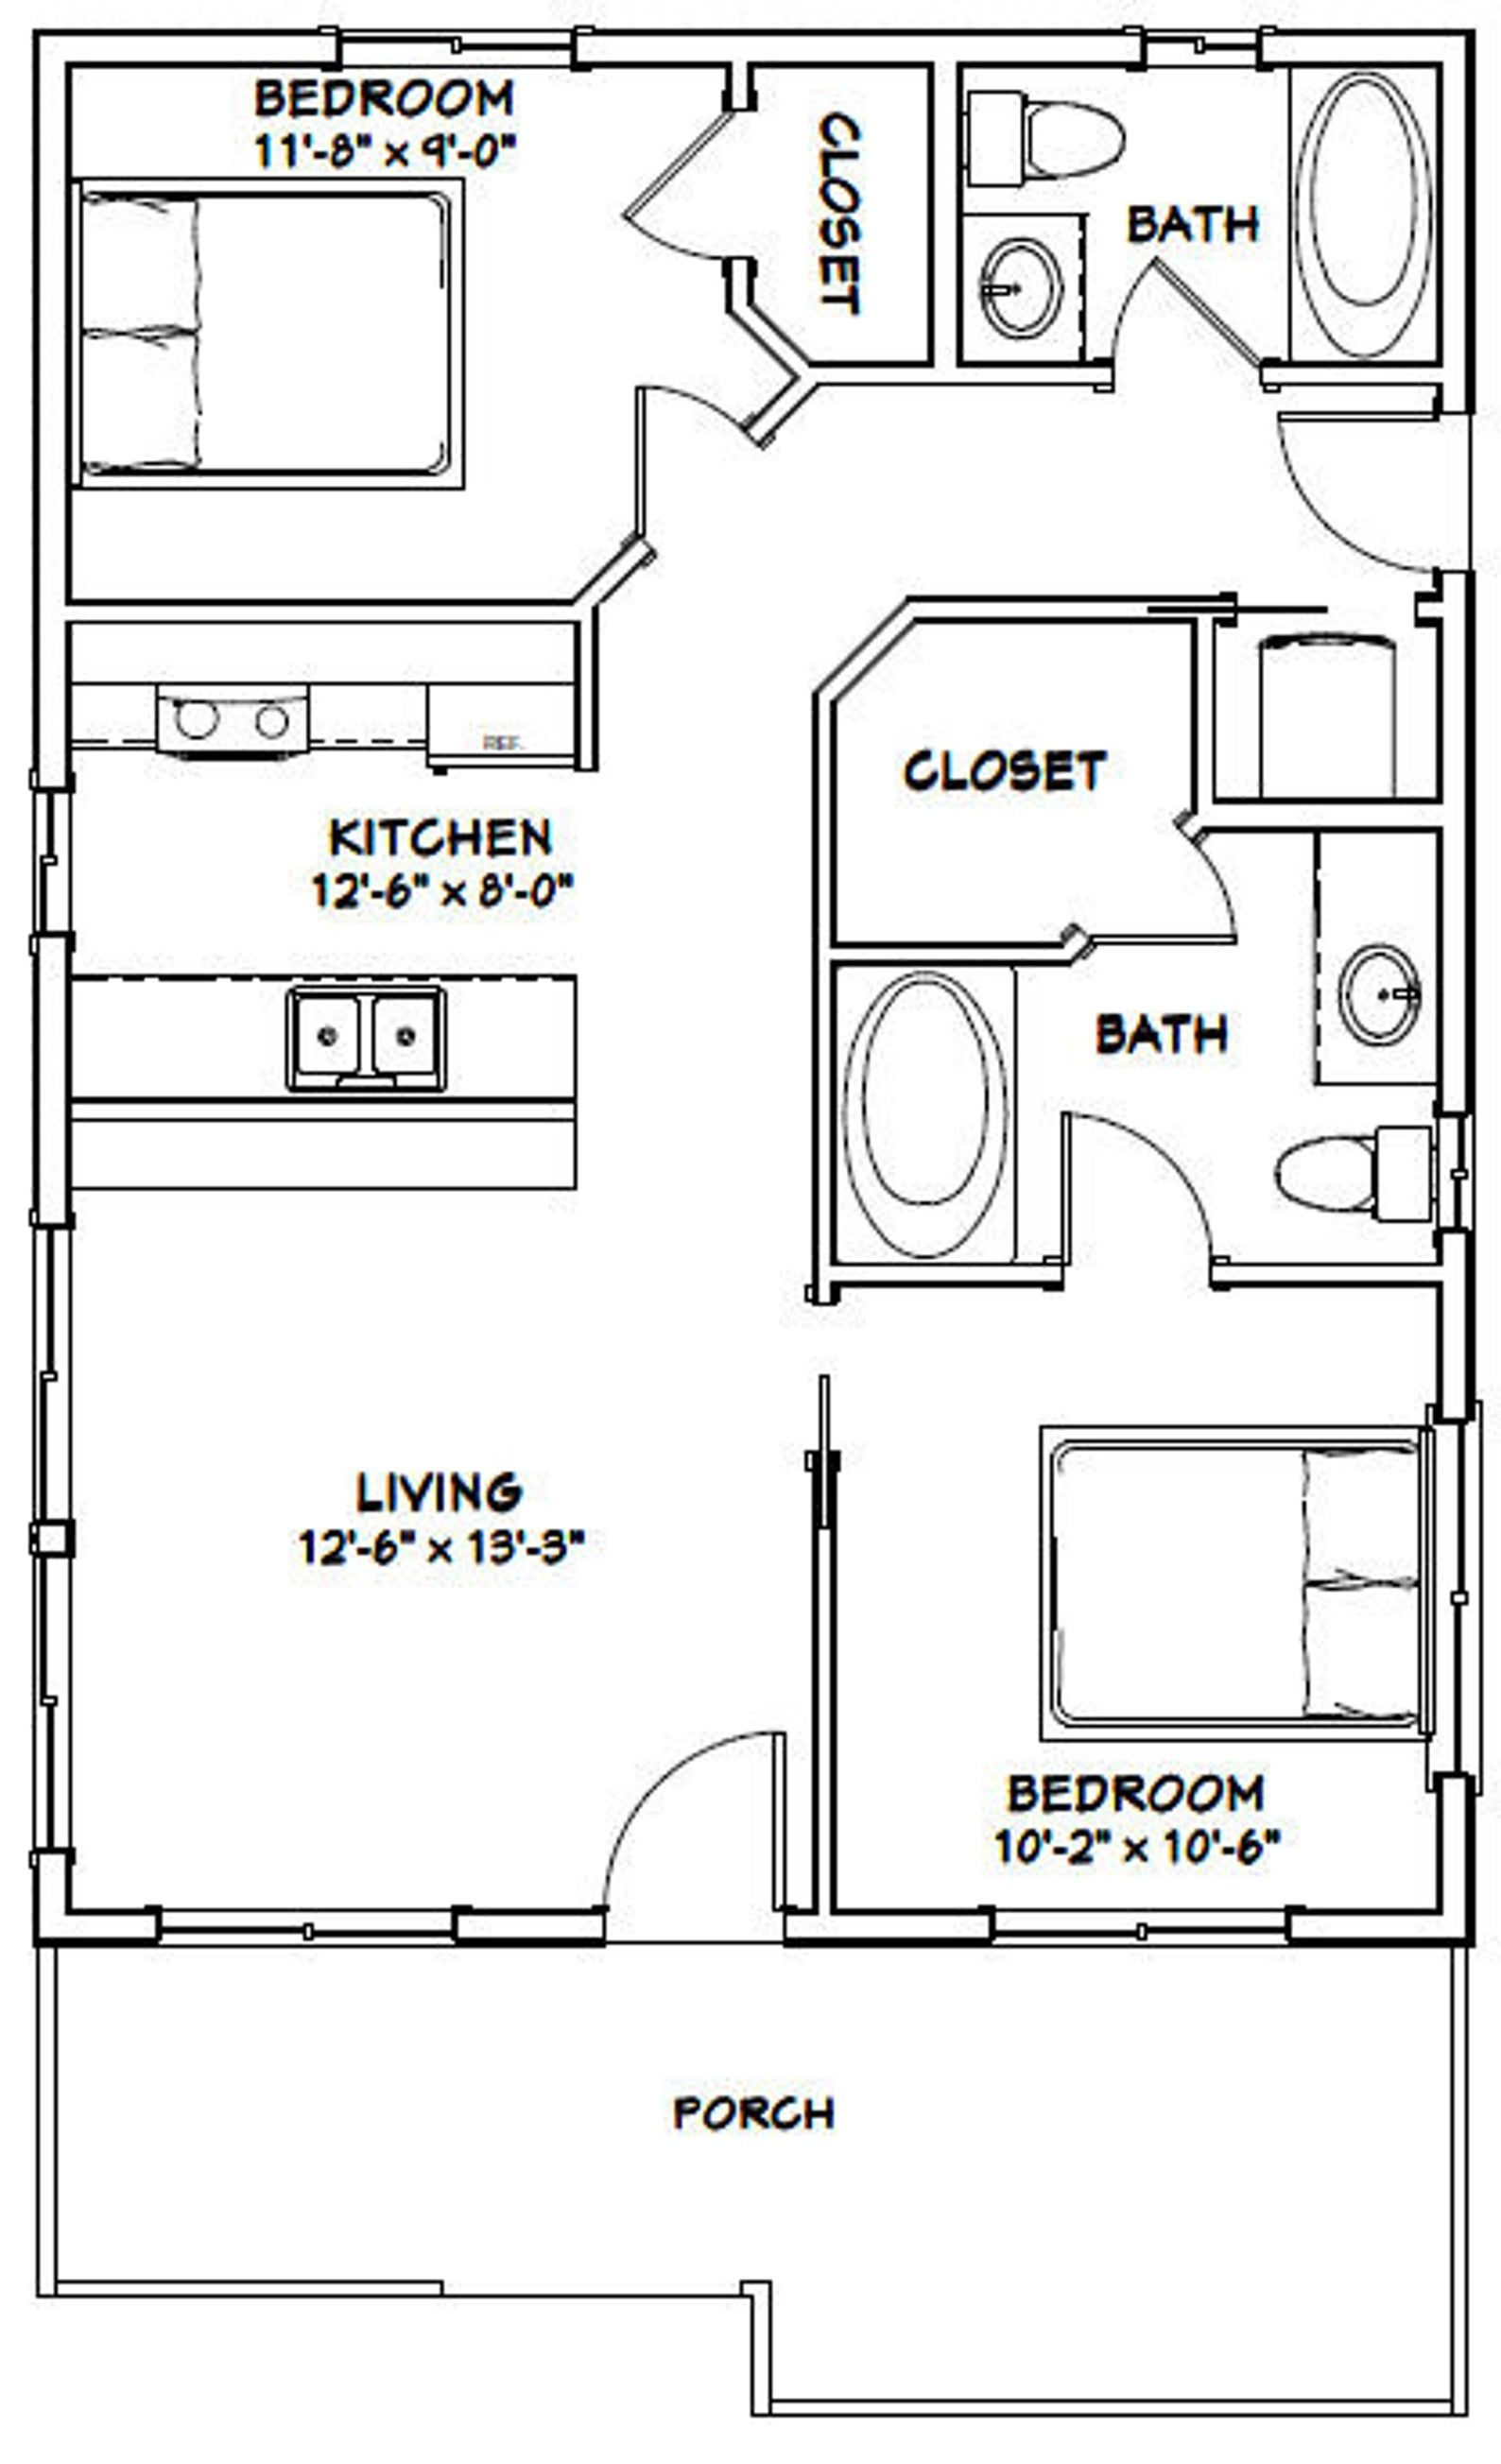 24x32 House 2Bedroom 1Bath 768 sq ft PDF Floor Plan